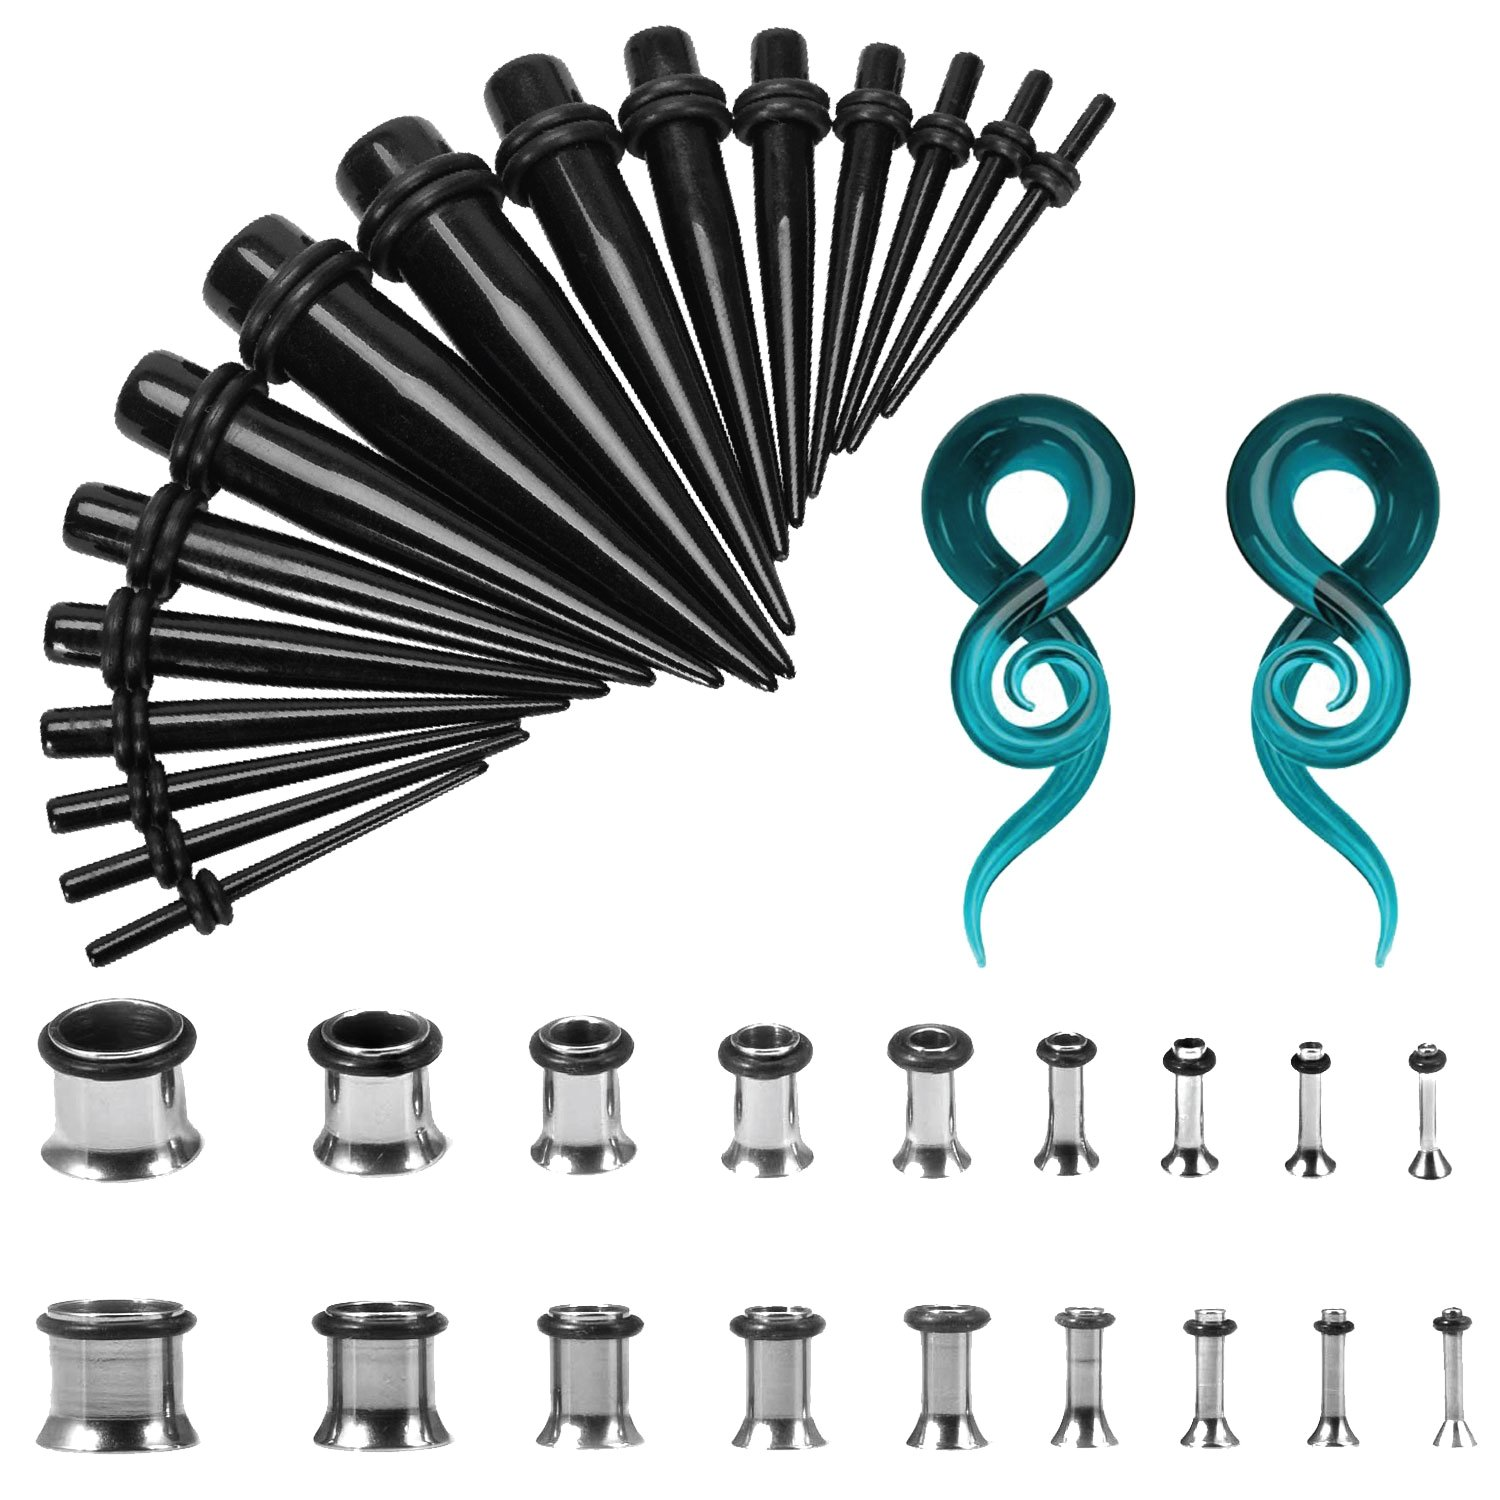 BodyJ4You 38PC Gauges Stretching Kit 14G-00G Stainless Steel Plug Black Tapers With 00G Spiral Glass Ear Set